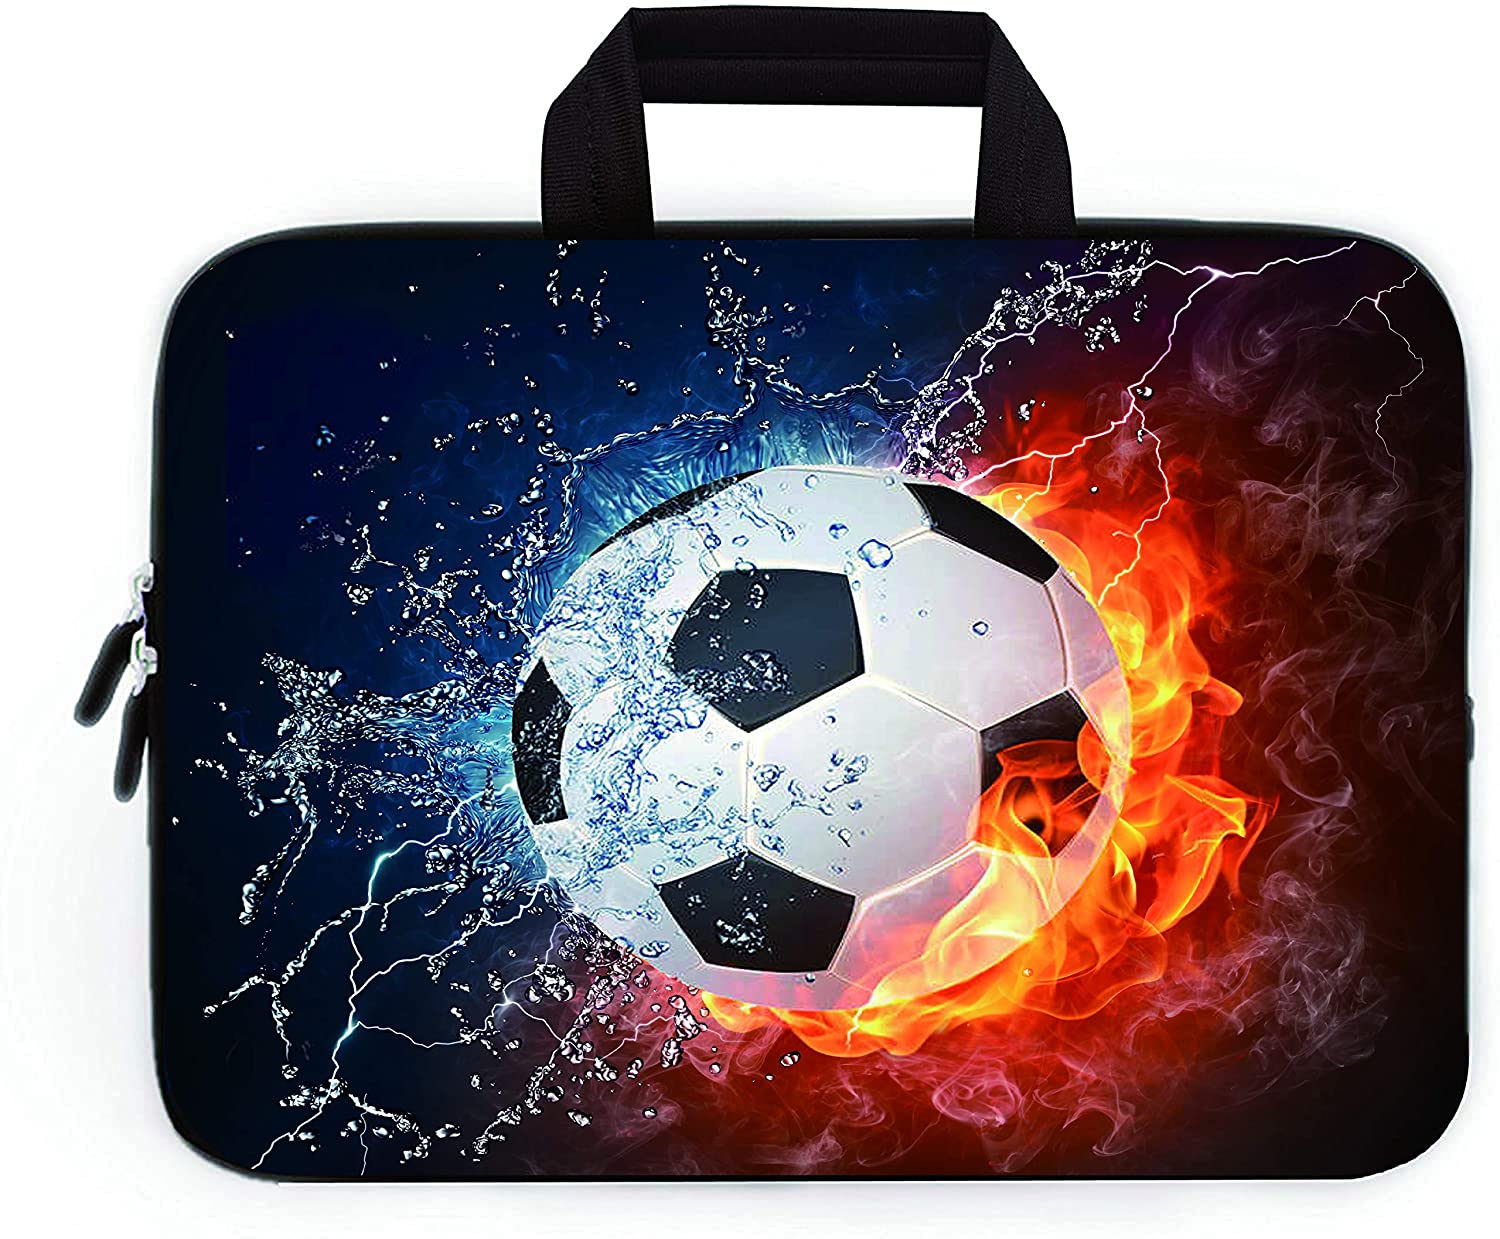 """11"""" 11.6"""" 12"""" 12.1"""" 12.5"""" inch Laptop Carrying Bag Chromebook Case Notebook Ultrabook Bag Tablet Cover Neoprene Sleeve Fit Apple MacBook Air Samsung Google Acer HP DELL Lenovo Asus(Football Fire)"""